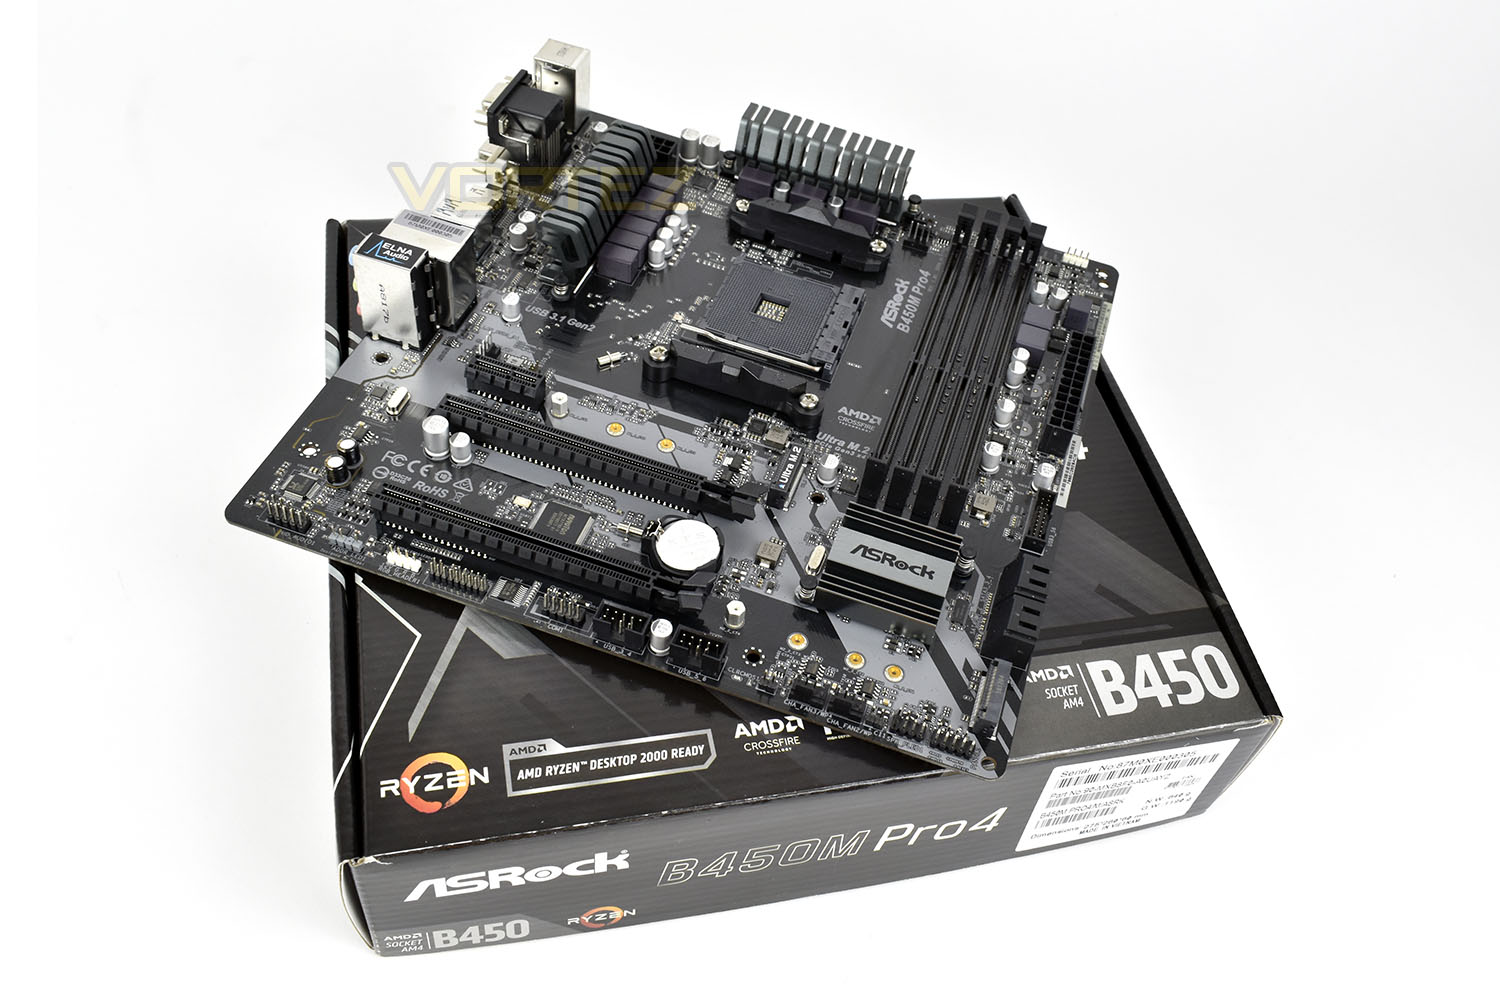 ASRock B450M Pro4 Review - Introduction